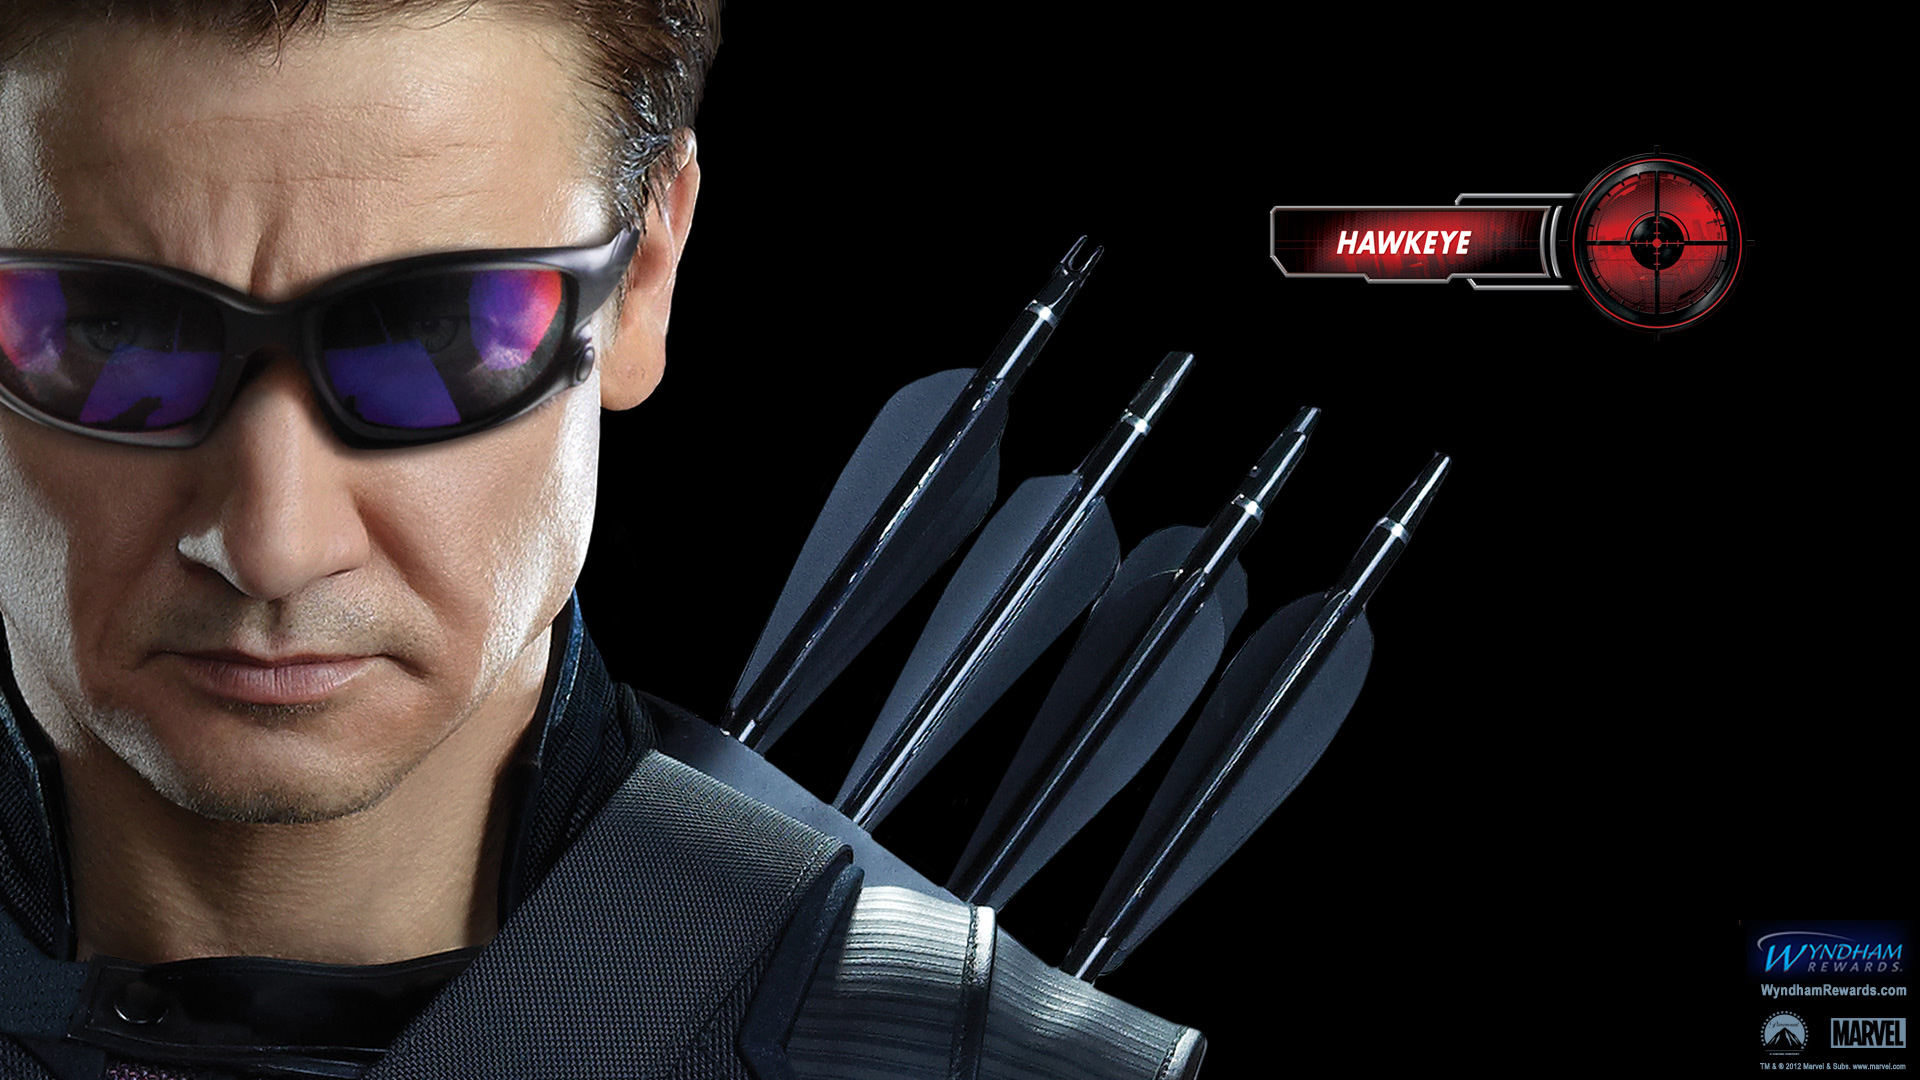 Hawkeye-Avengers-wallpaper-wp34051